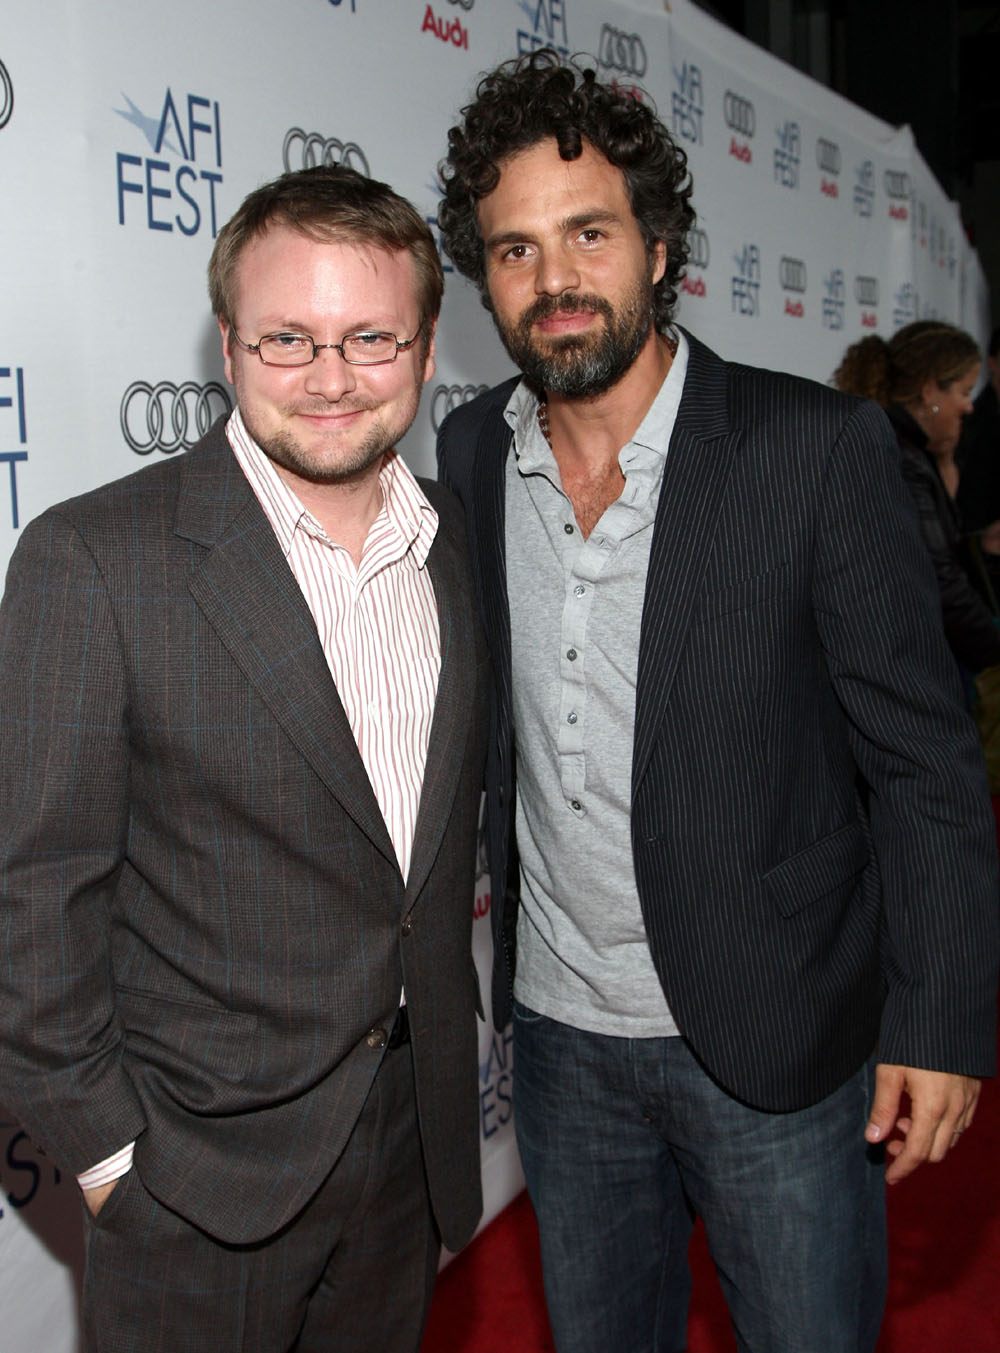 Mark Ruffalo, Rian Johnson at AFI FEST 2008